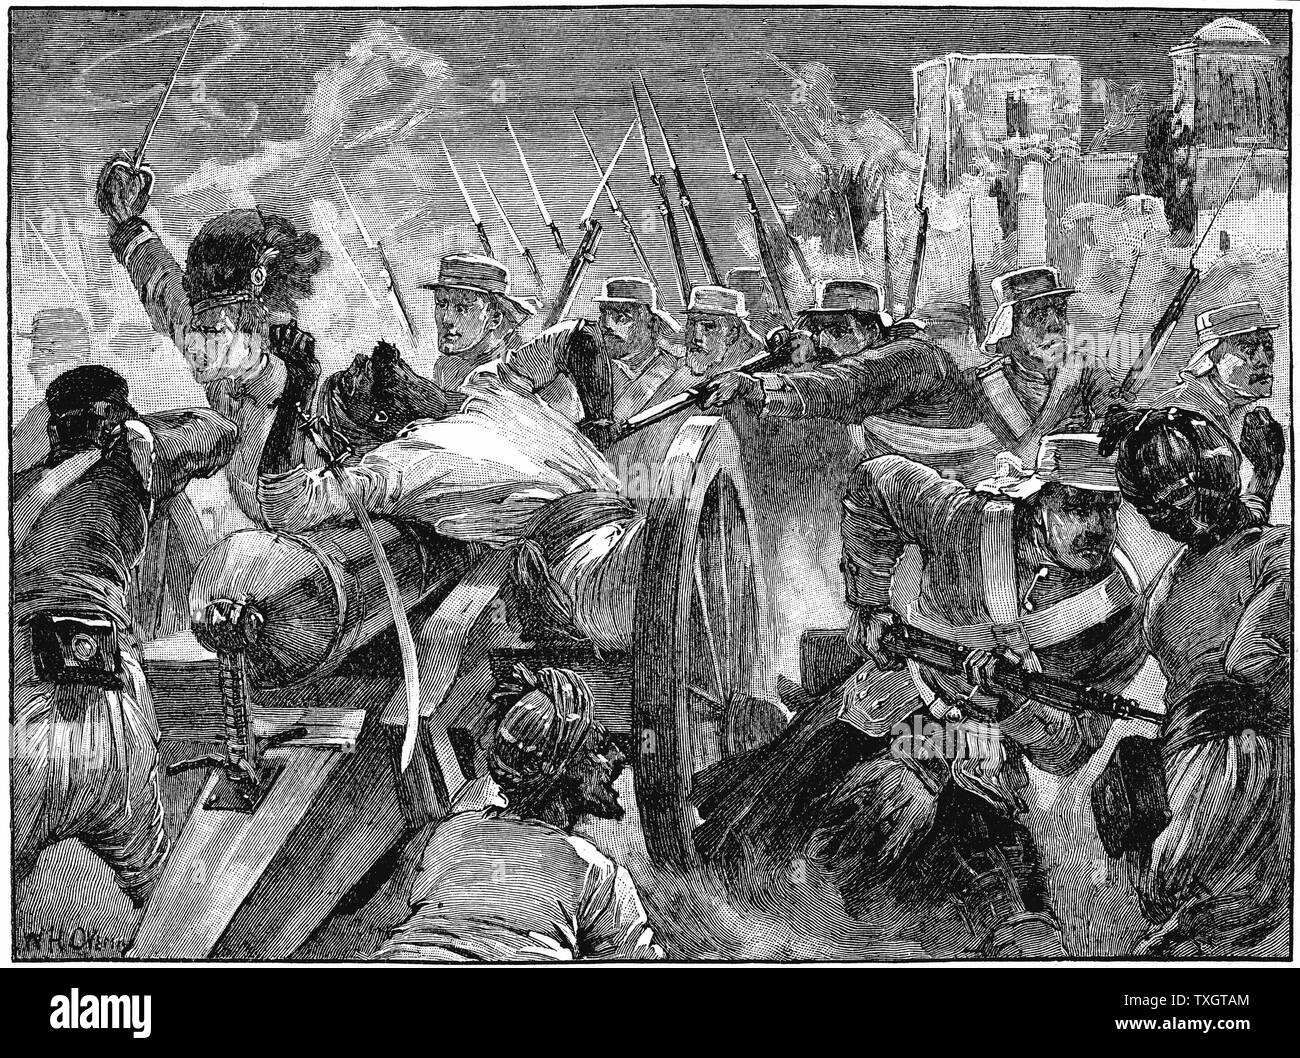 Indian Mutiny (Sepoy Mutiny) 1857-59 Highlanders capturing the muntineers' guns at Cawnpore, 16 July 1857 c.1895  Wood engraving - Stock Image